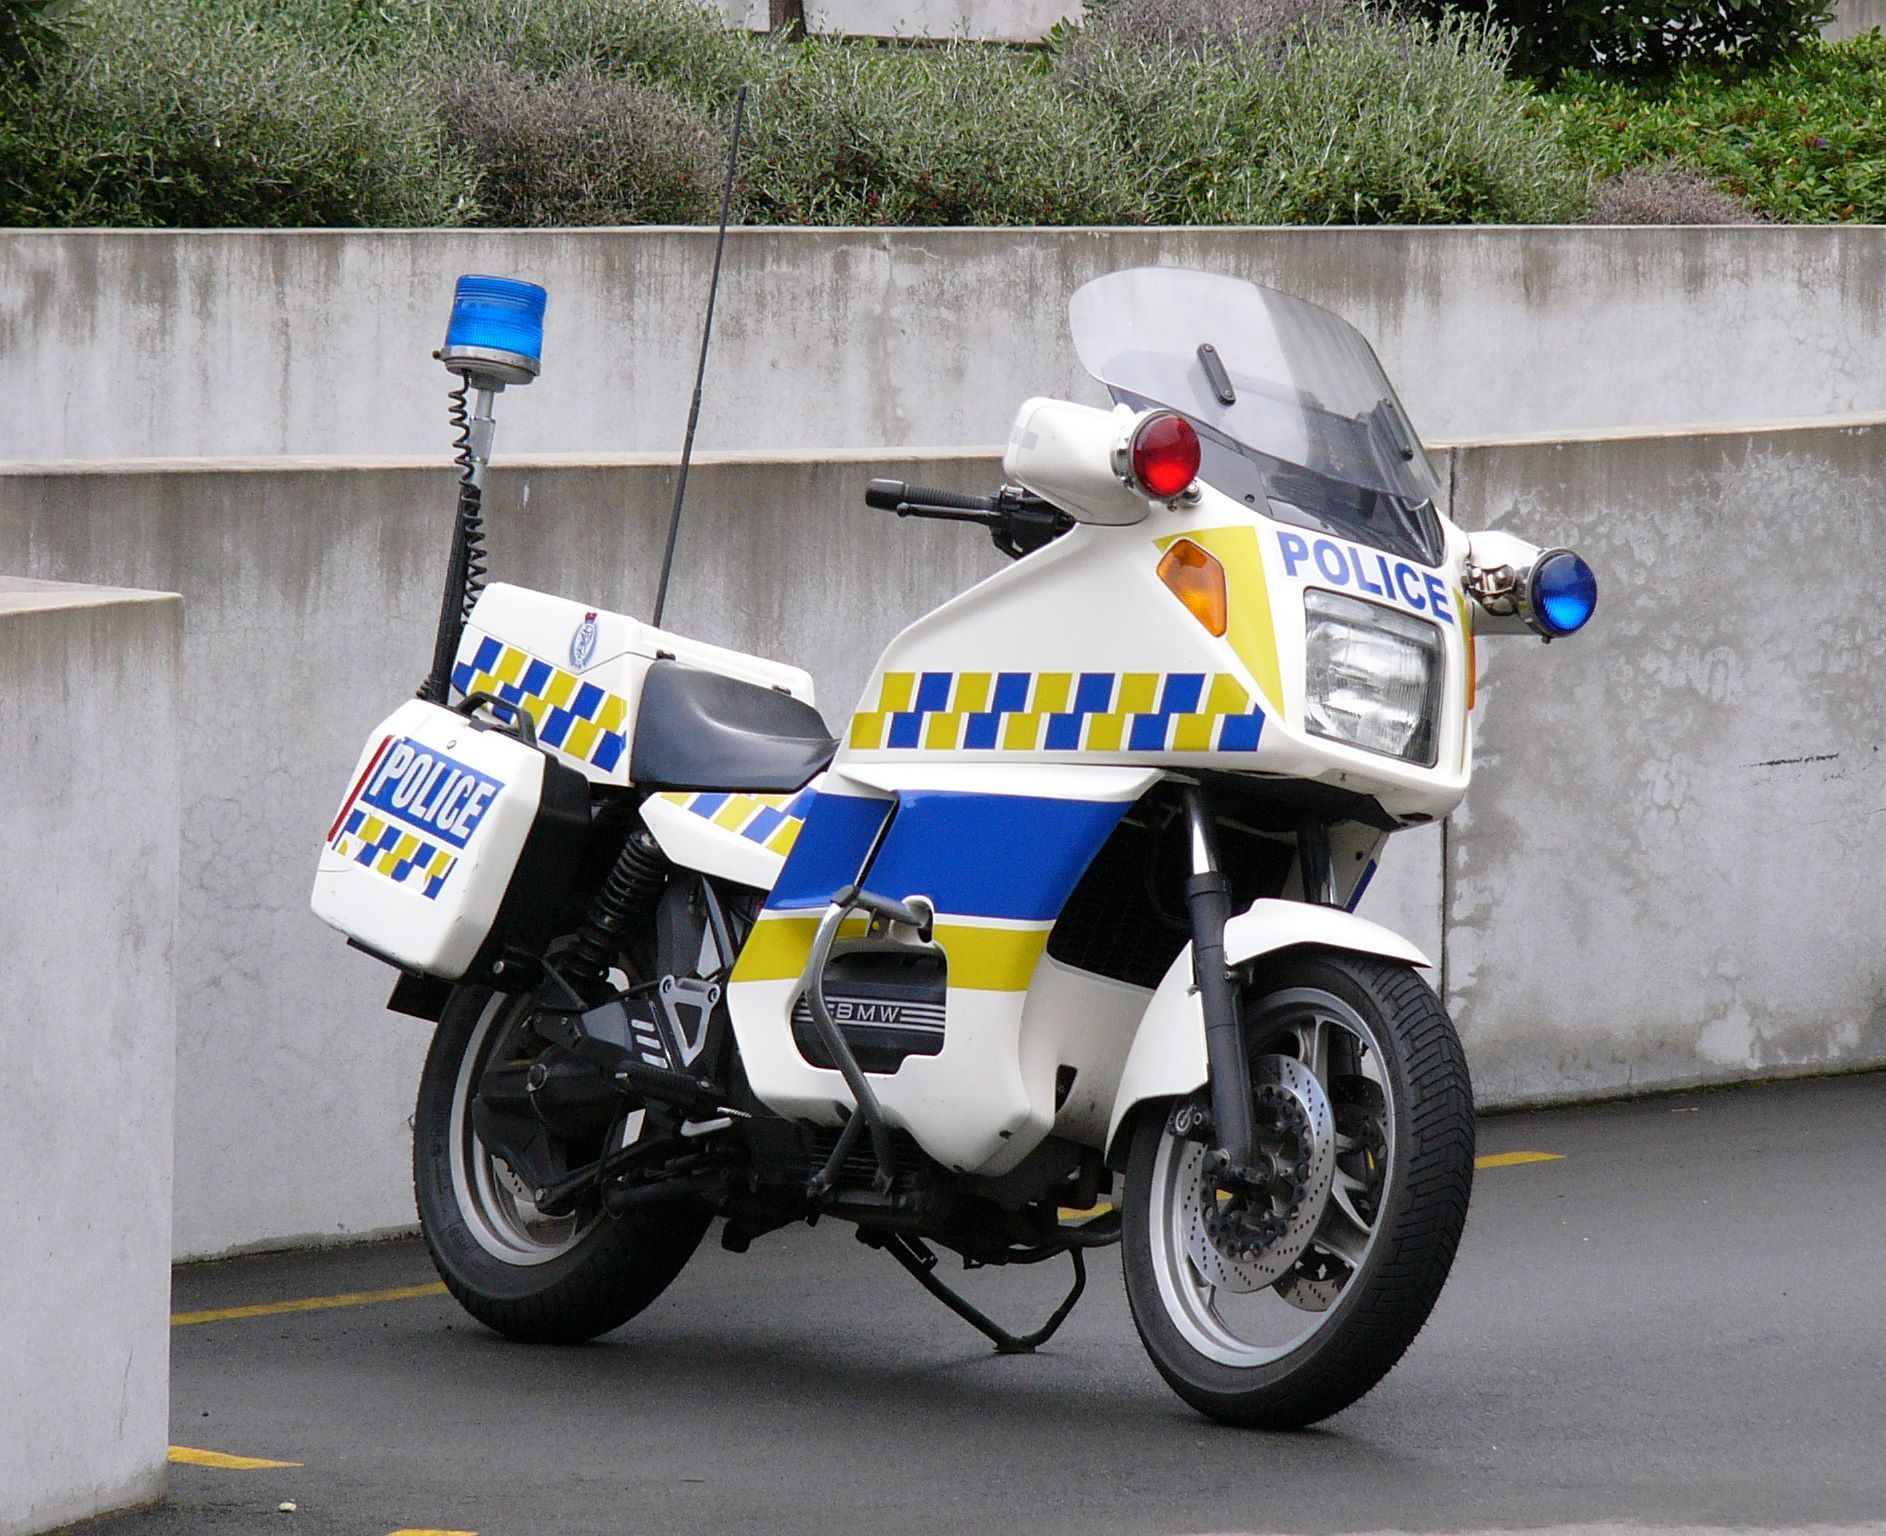 hight resolution of new zealand police motorcycle police motorcycle bmw setcom http